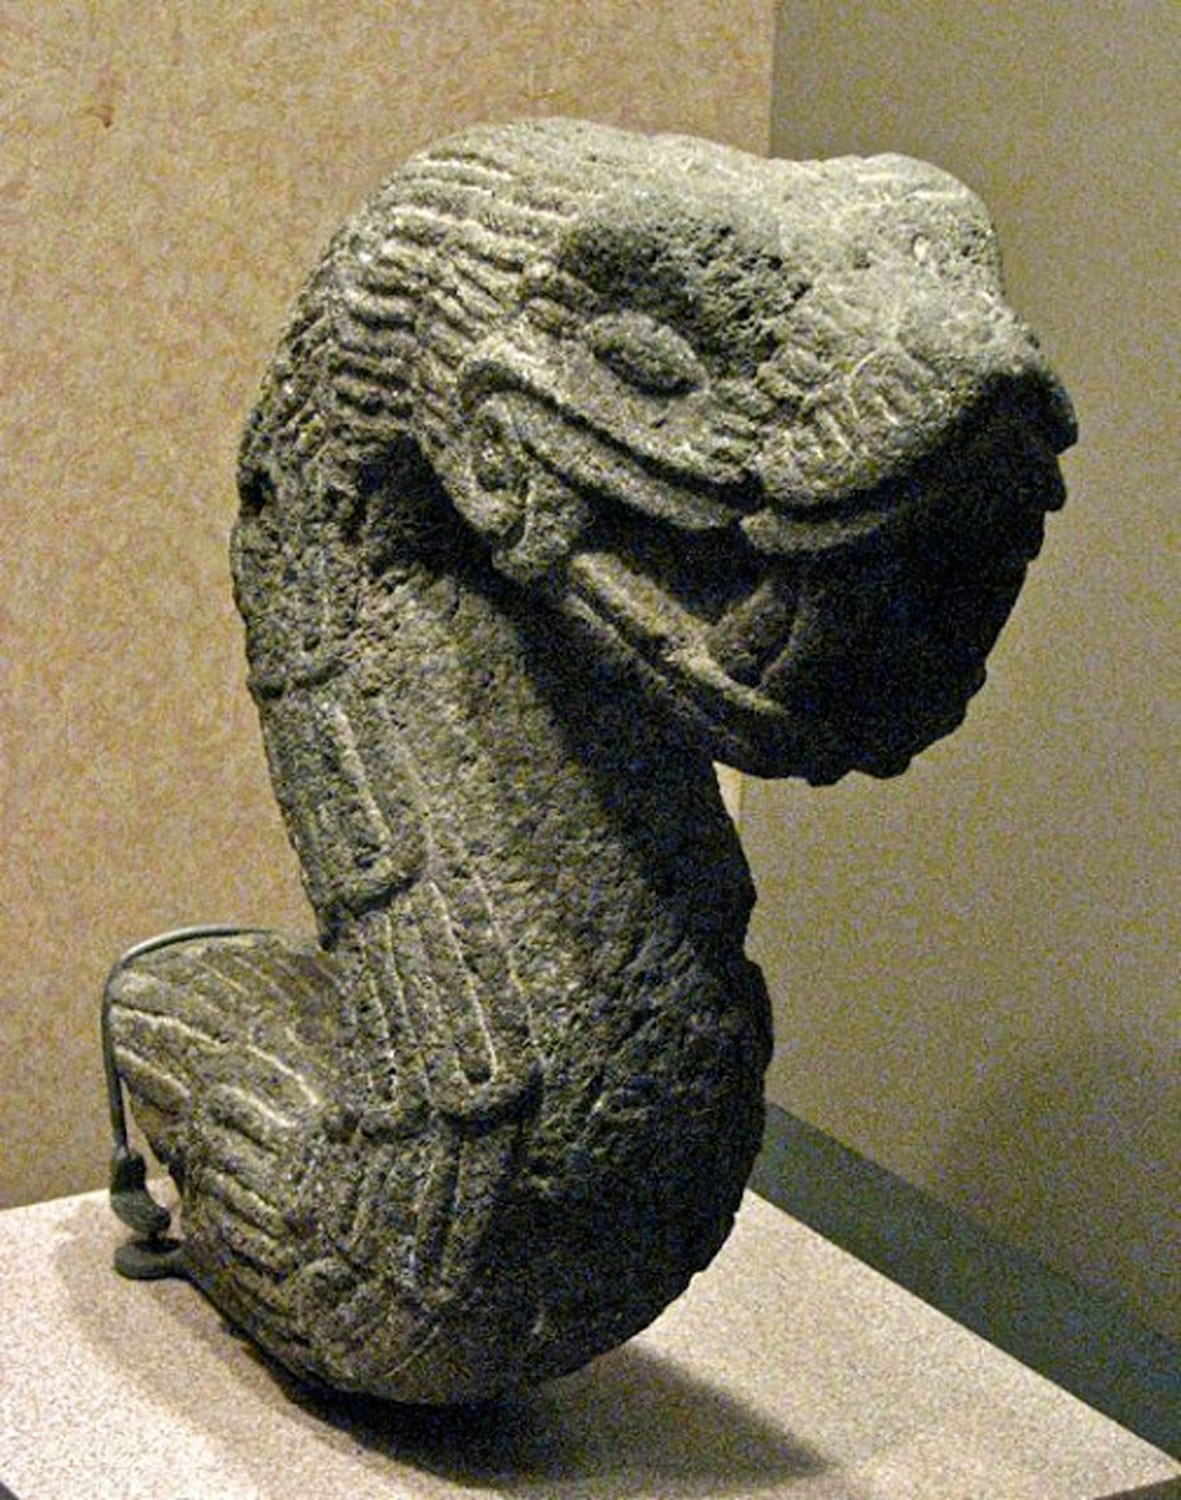 Aztec stone sculpture of a feathered serpent at the National Museum of Anthropology, Mexico City